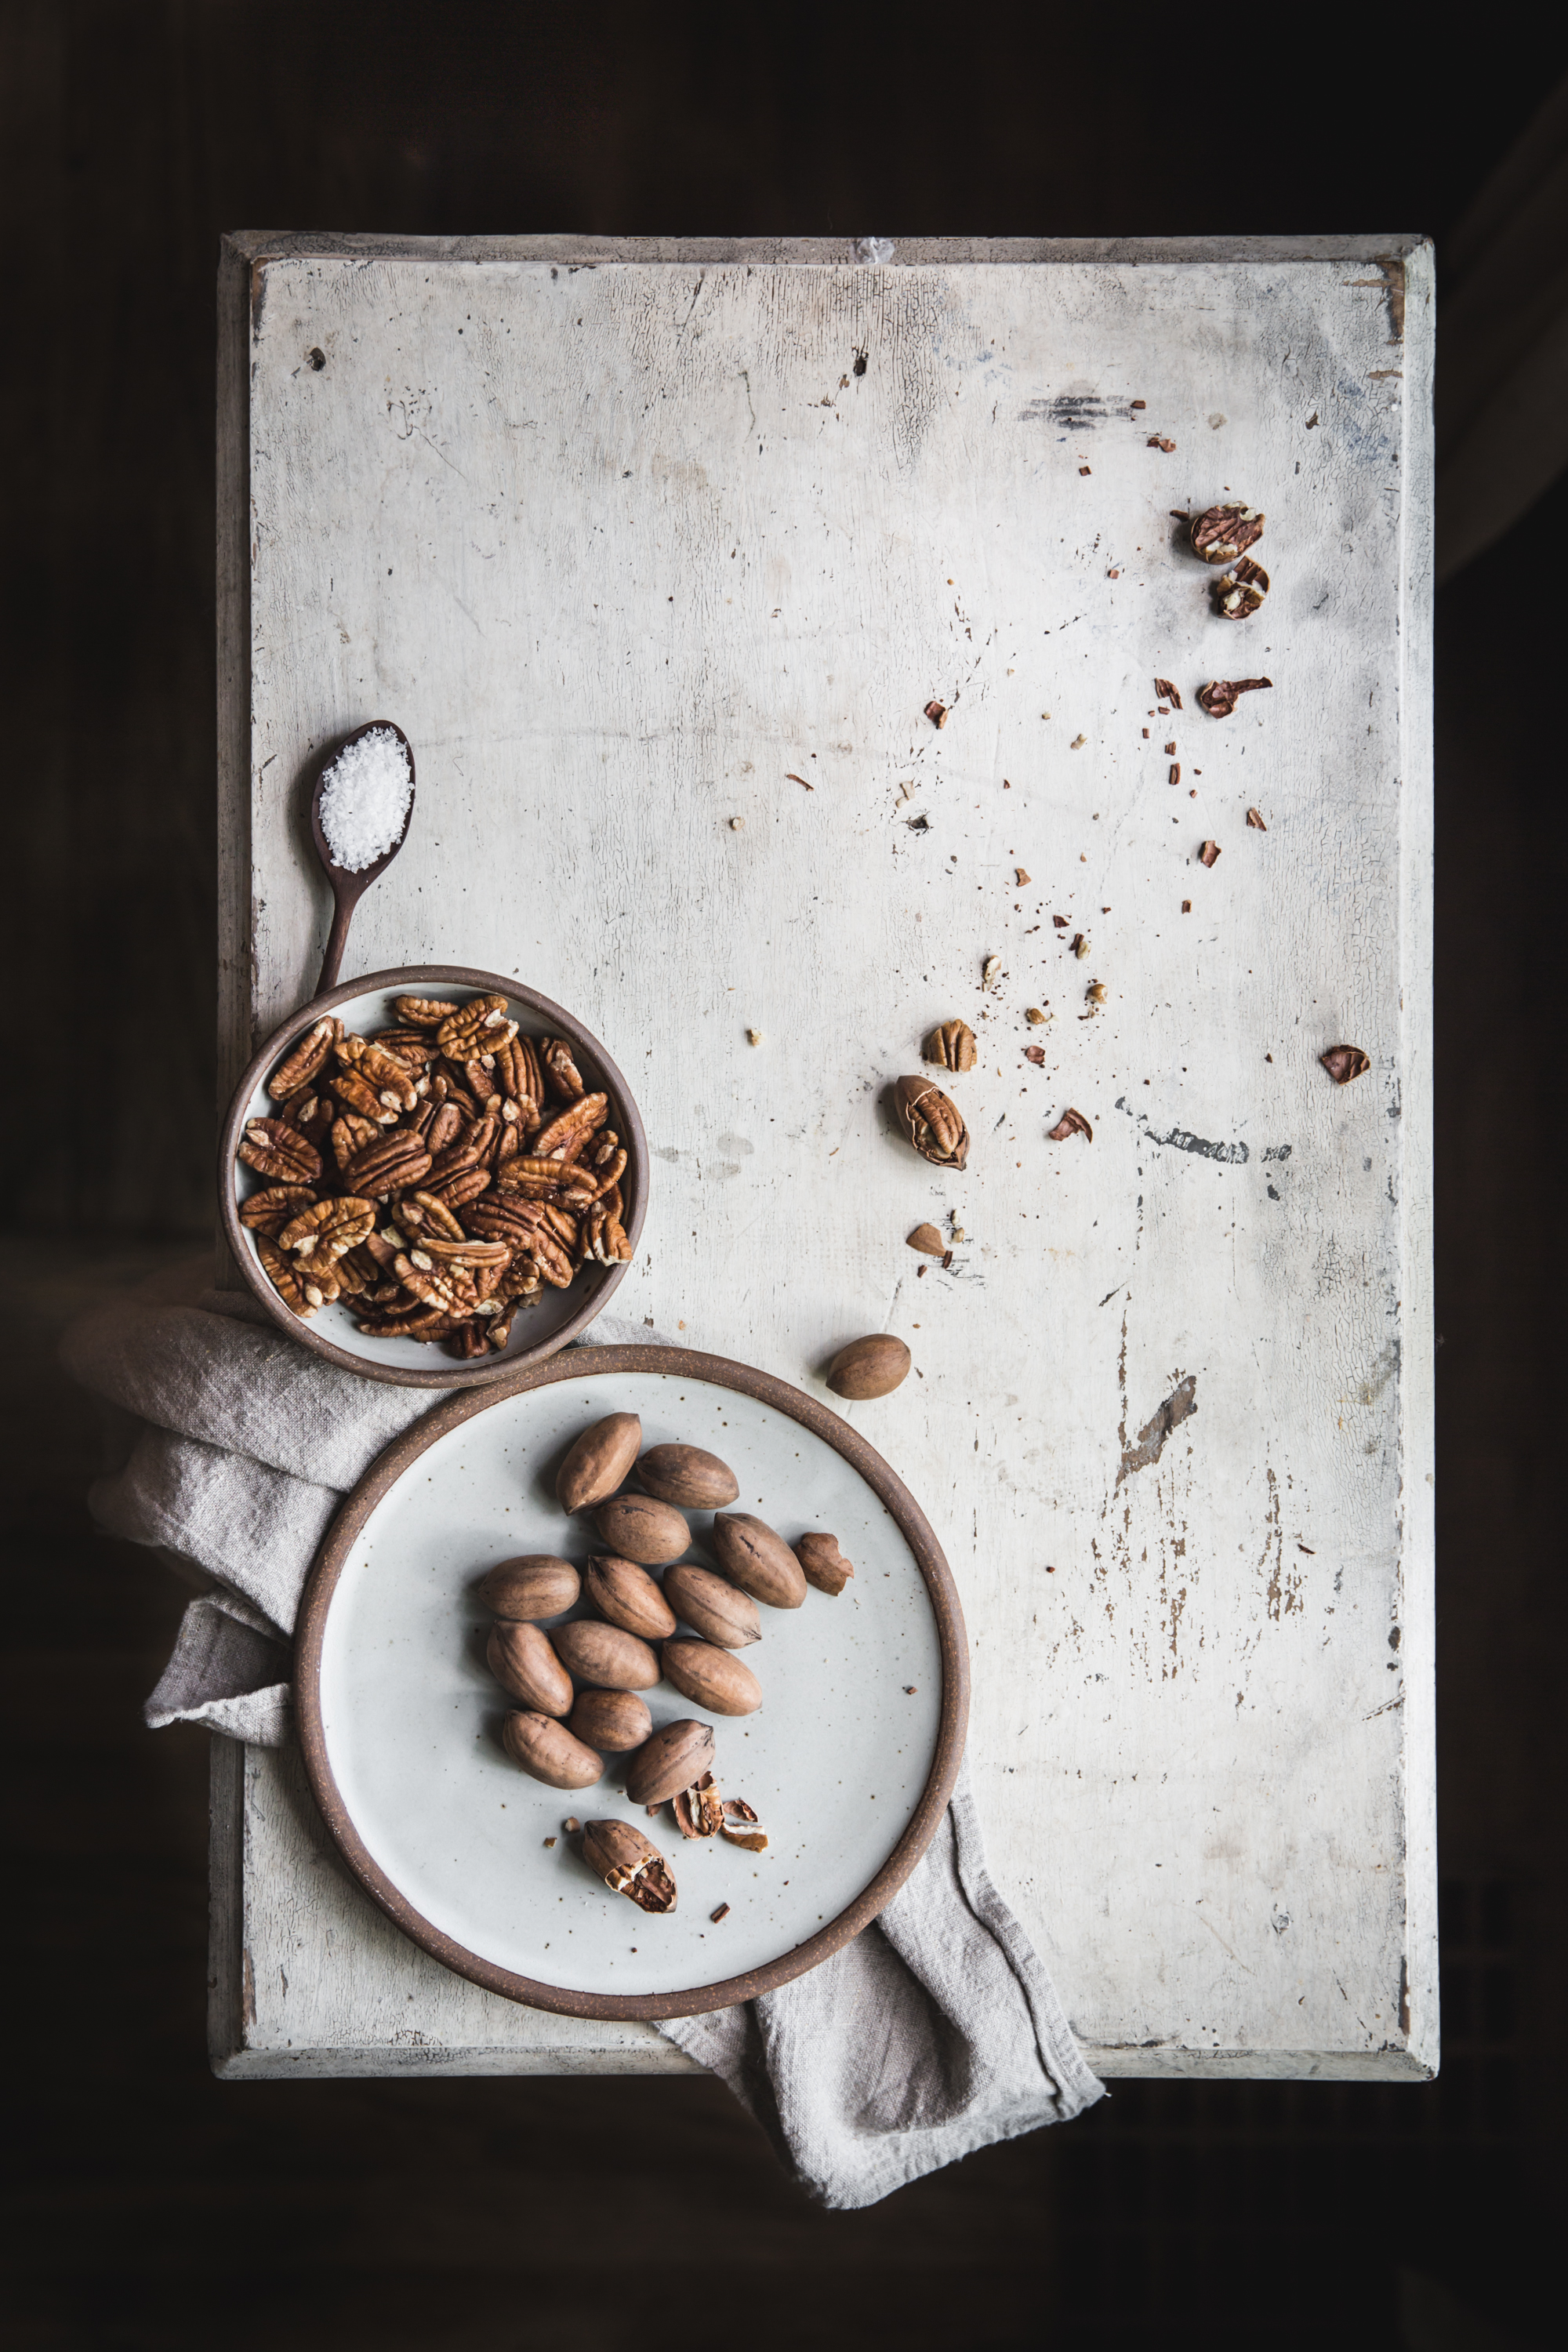 Savory Pecan and Rosemary Granola Bars with Honey, Dates, and Coconut by Eva Kosmas Flores of Adventures in Cooking